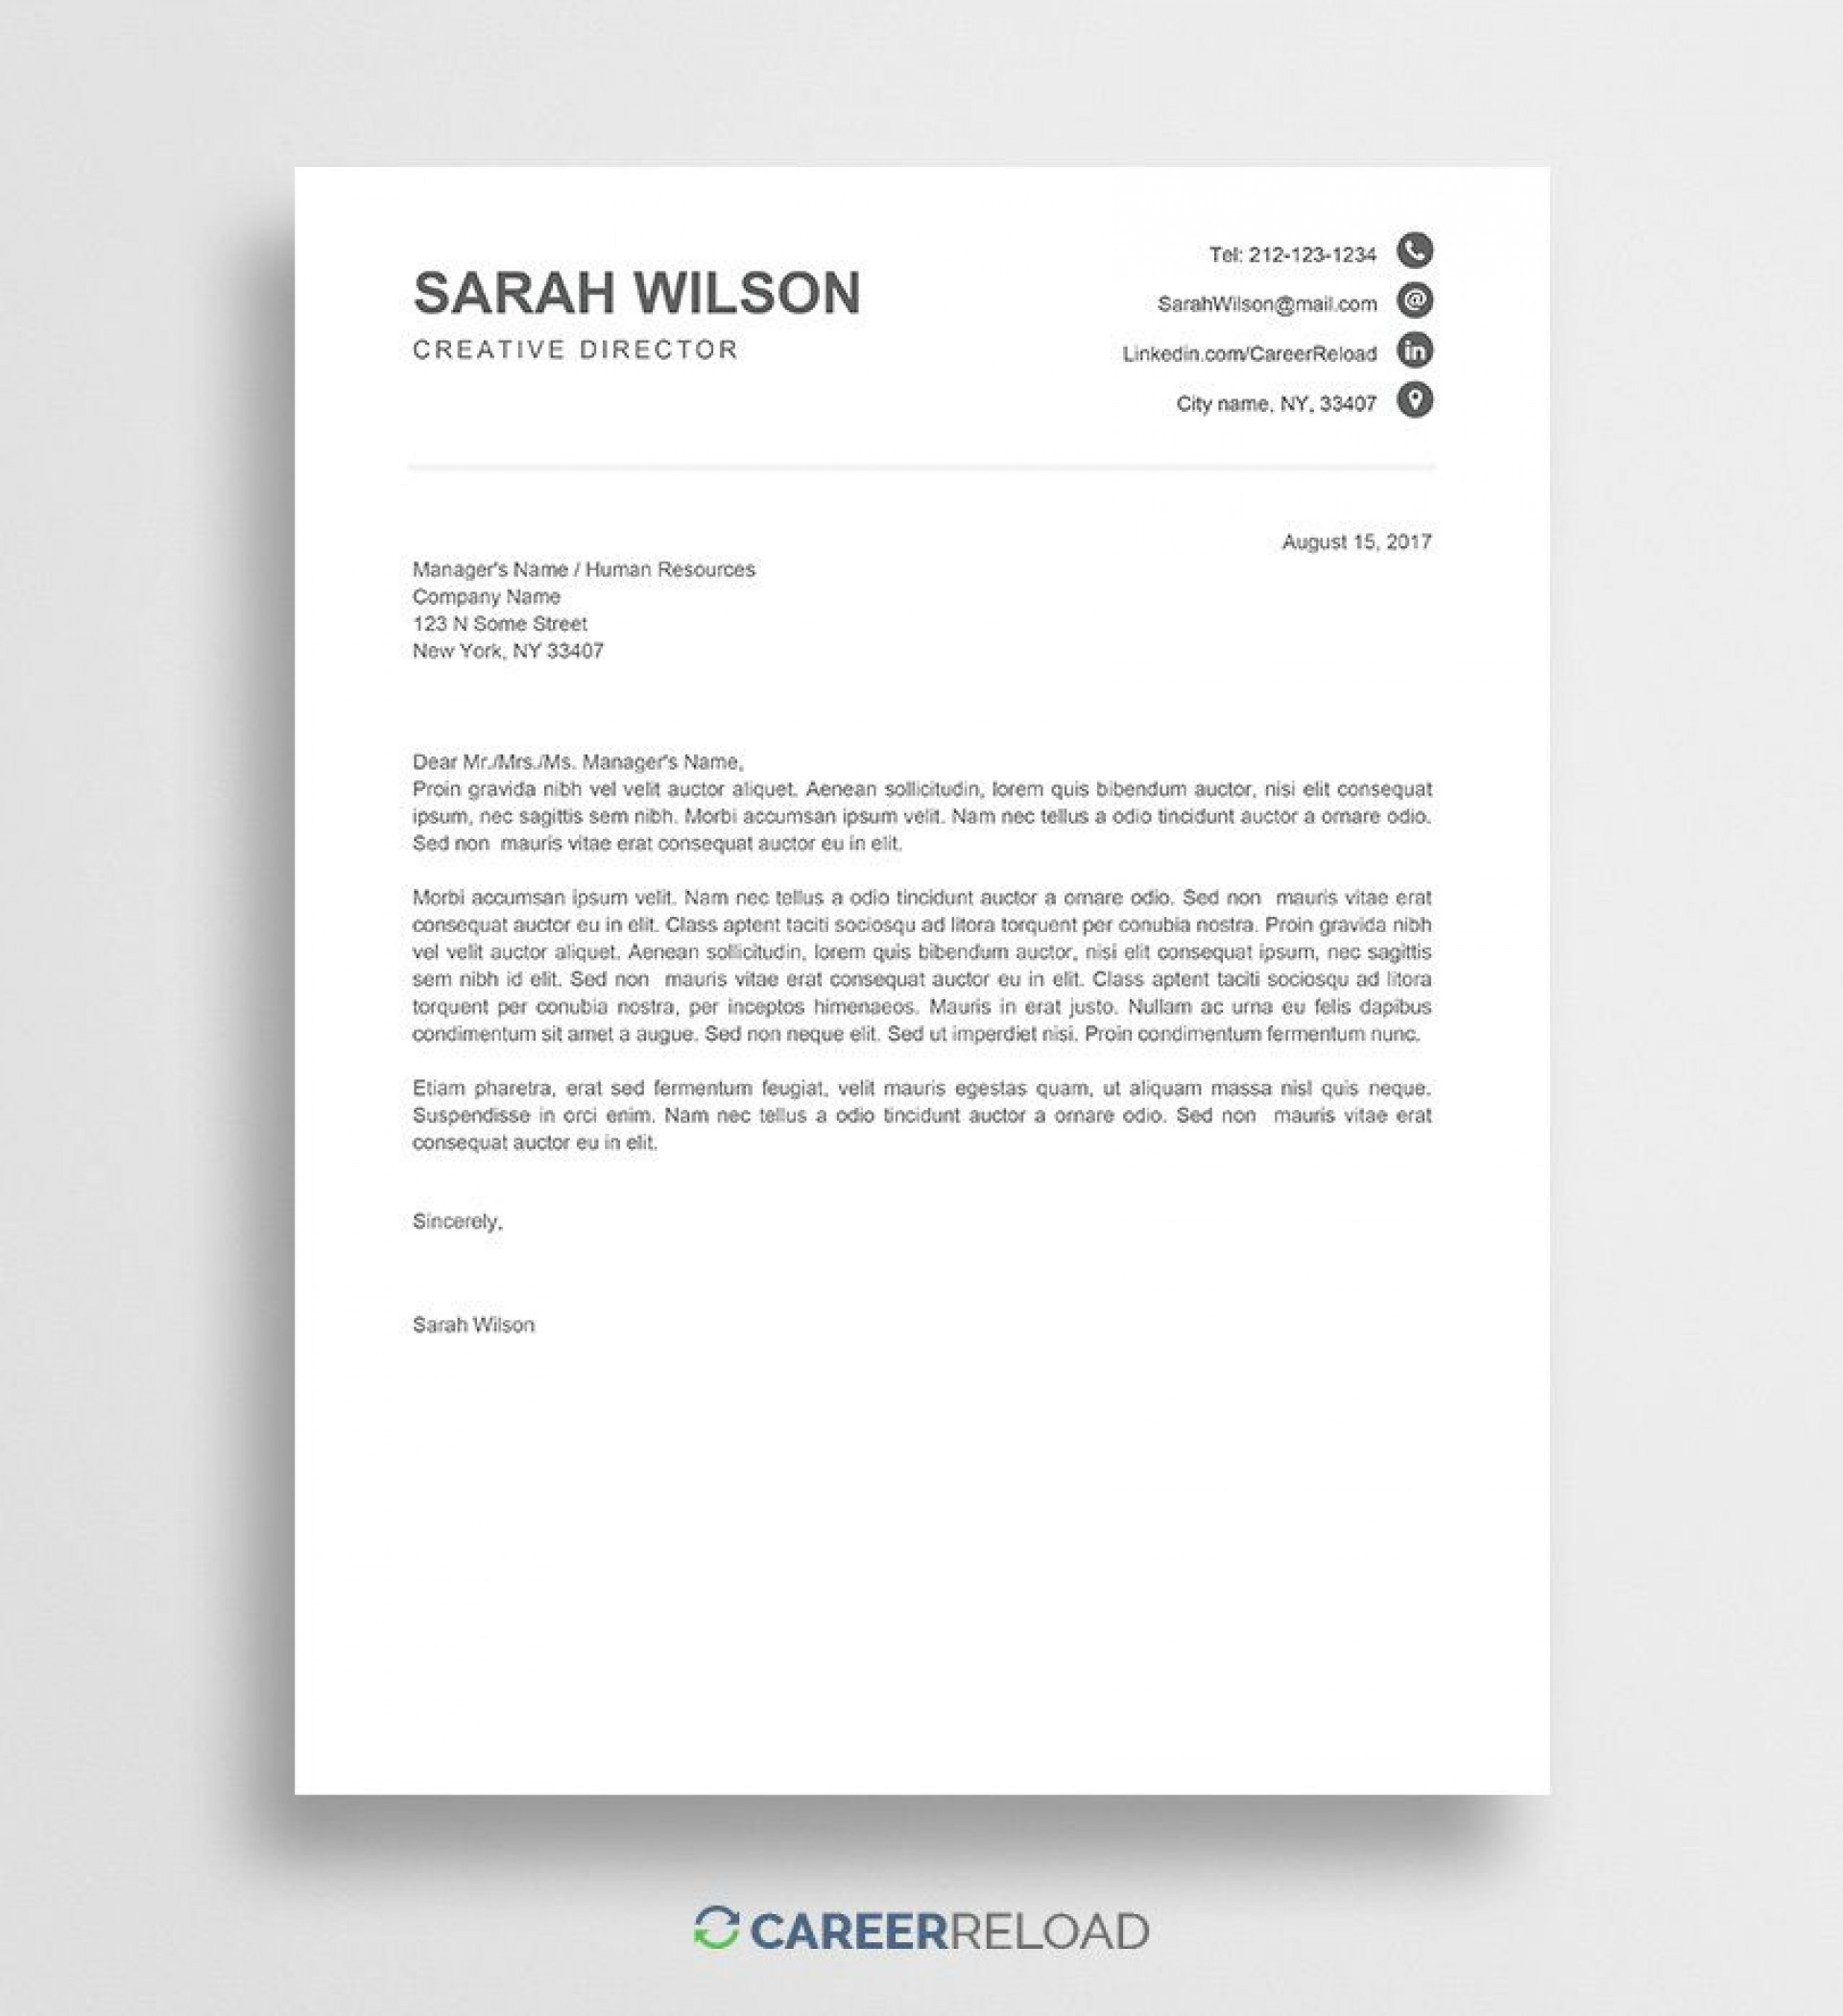 008 Awful Resume Cover Letter Template Docx Example 1920